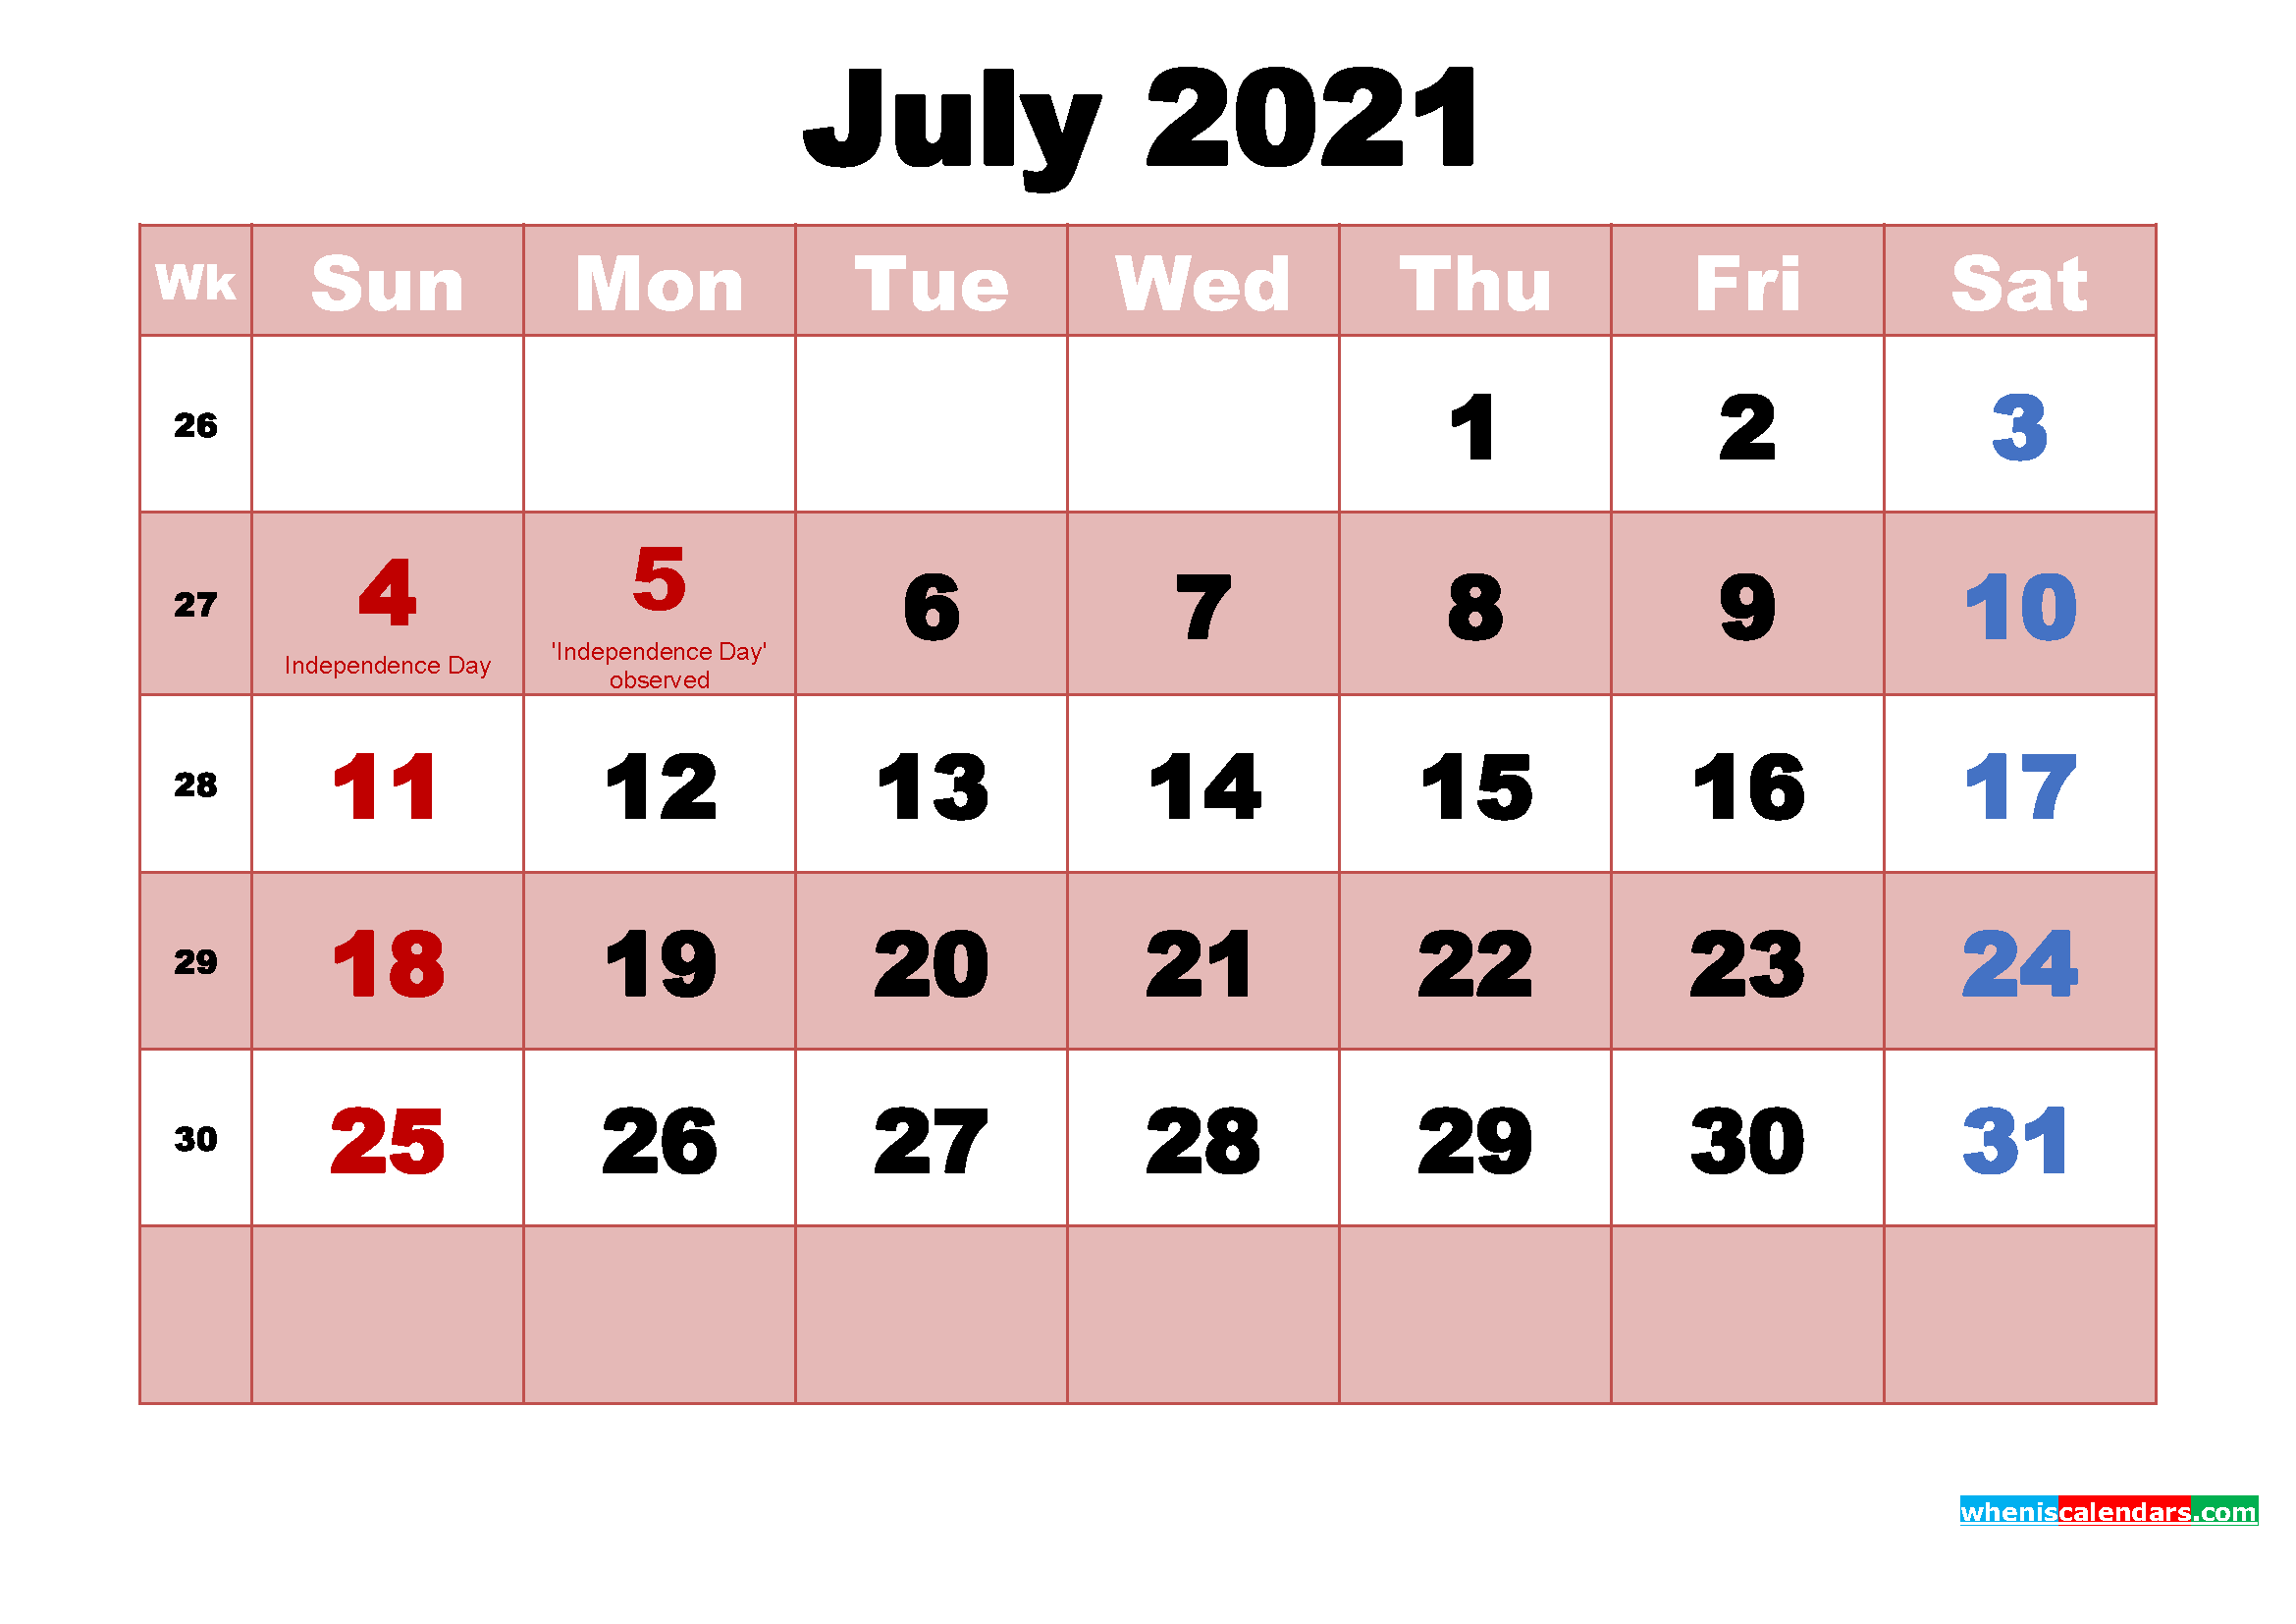 July 2021 Calendar with Holidays Wallpaper